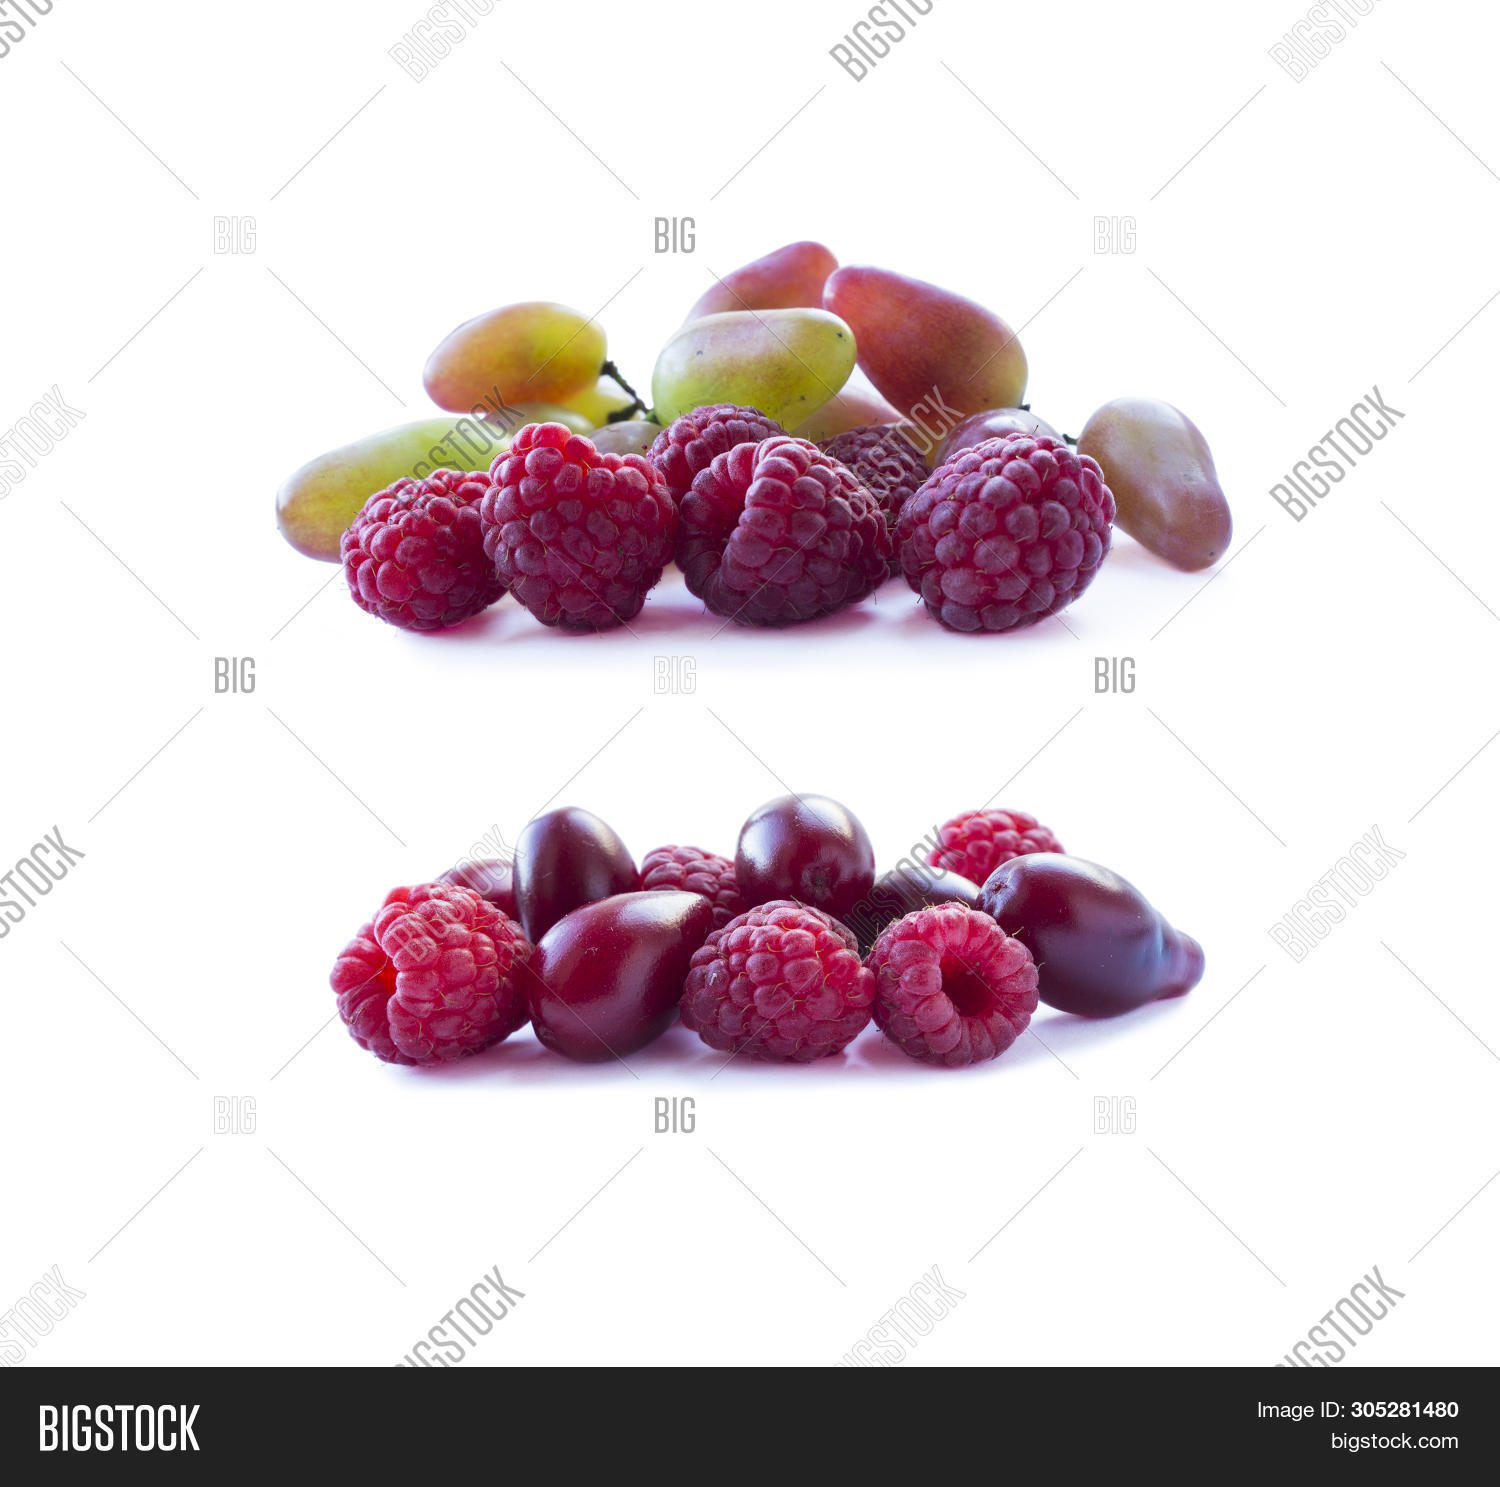 Pink Berries Isolated On White Background. Ripe Raspberries And Grapes. Background Of Mix Berries Wi